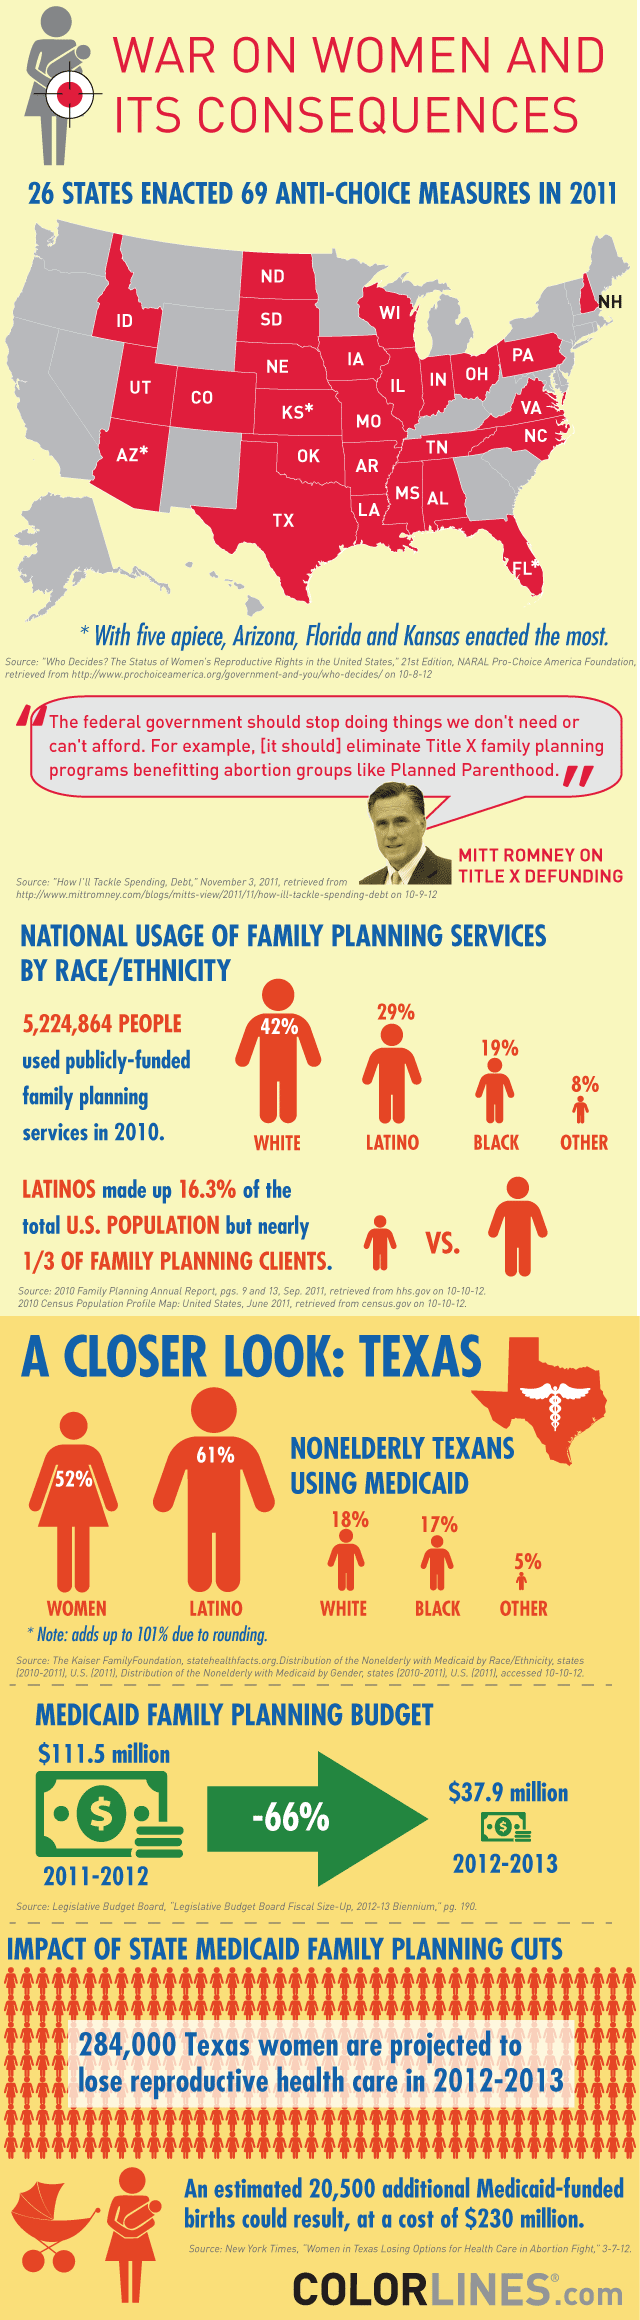 Reproductive Health Care Retrench-Infographic